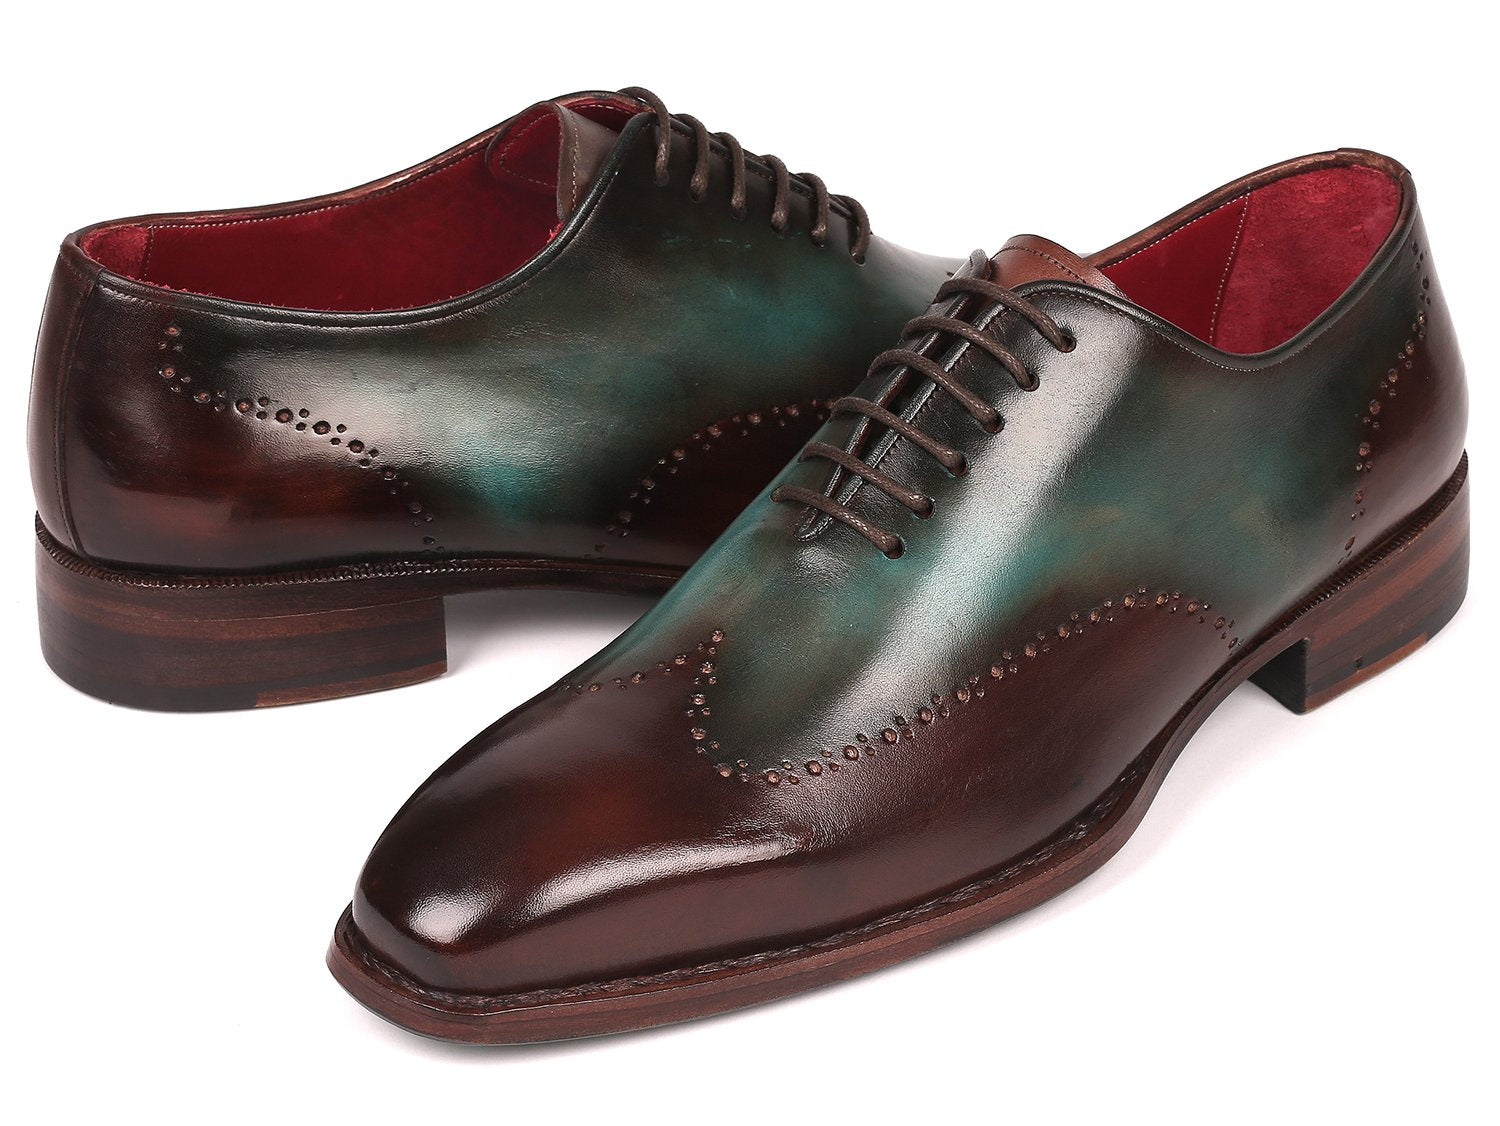 Paul Parkman Goodyear Welted Wingtip Oxfords Brown & Turquoise (ID#081-BTQ)